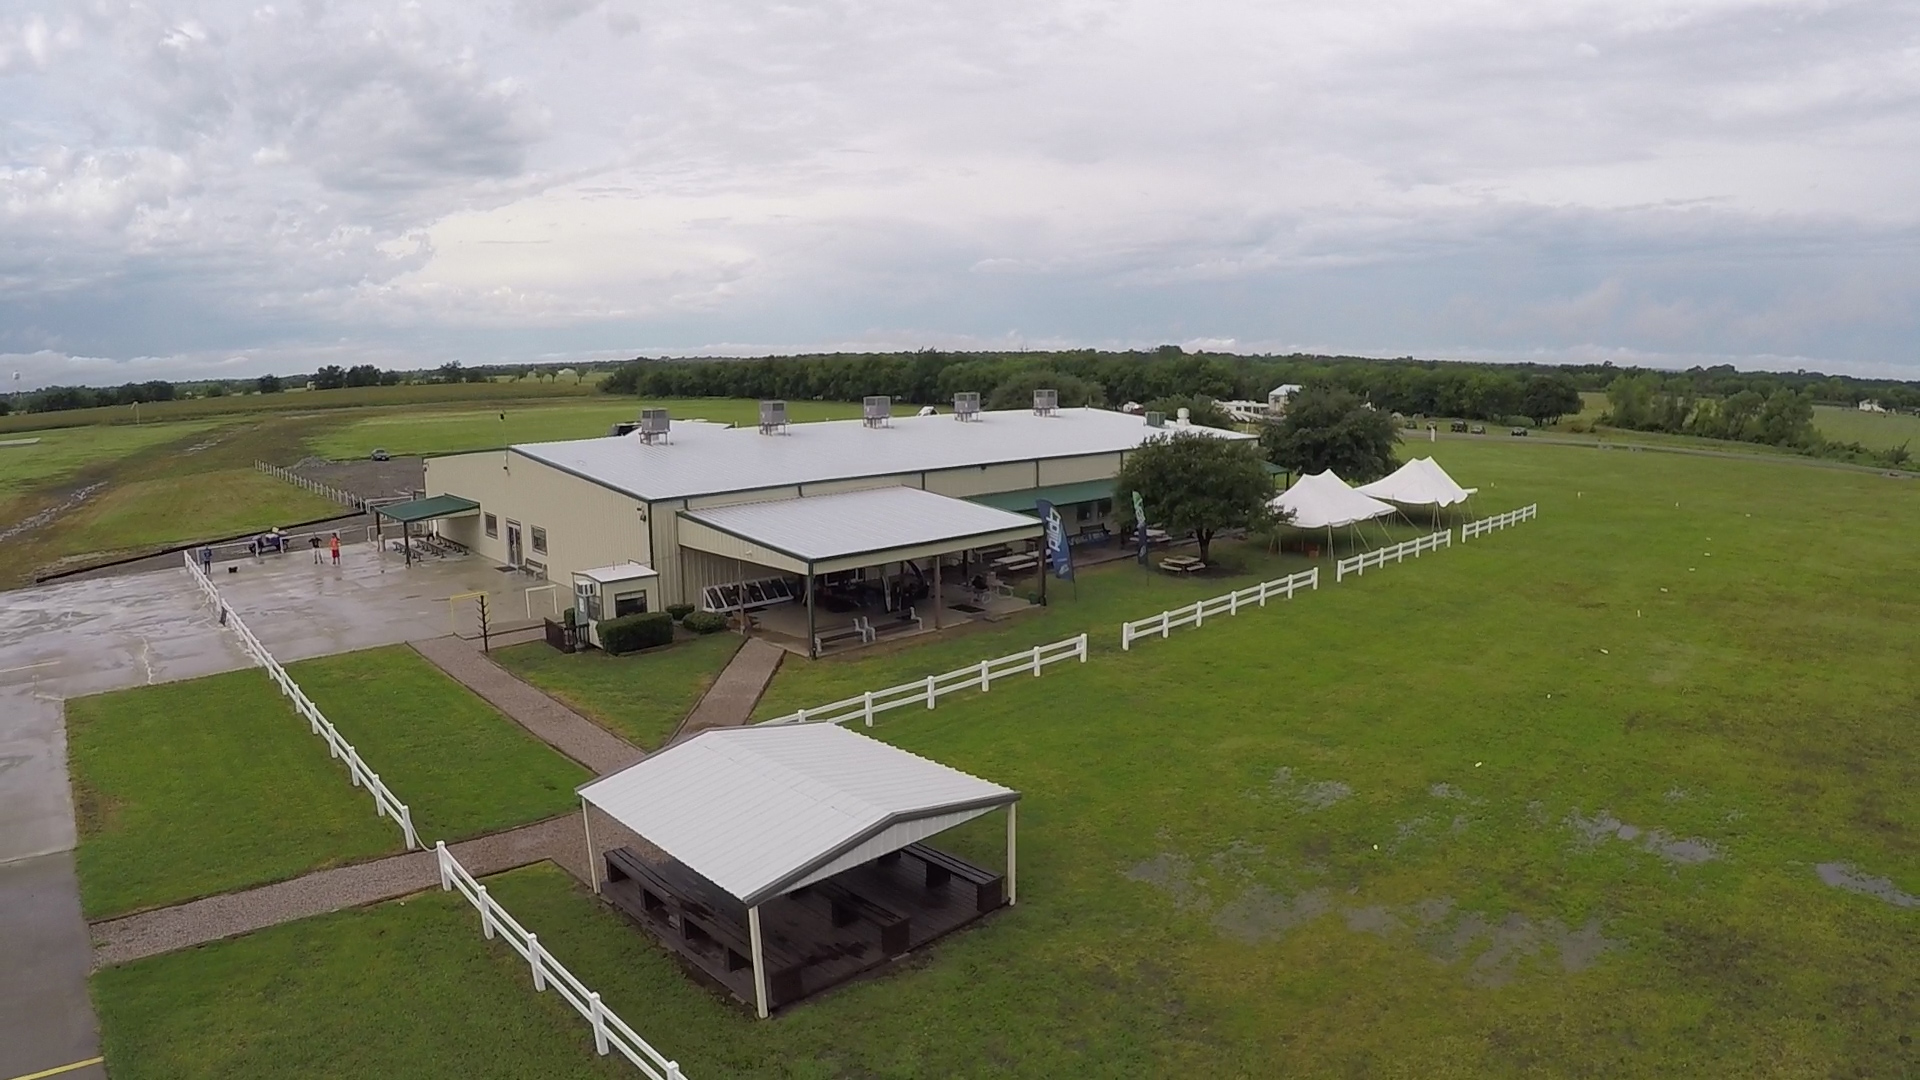 Our main facility includes a large building for classrooms, packing, deli, and covered loading areas for skydivers waiting to board the planes.